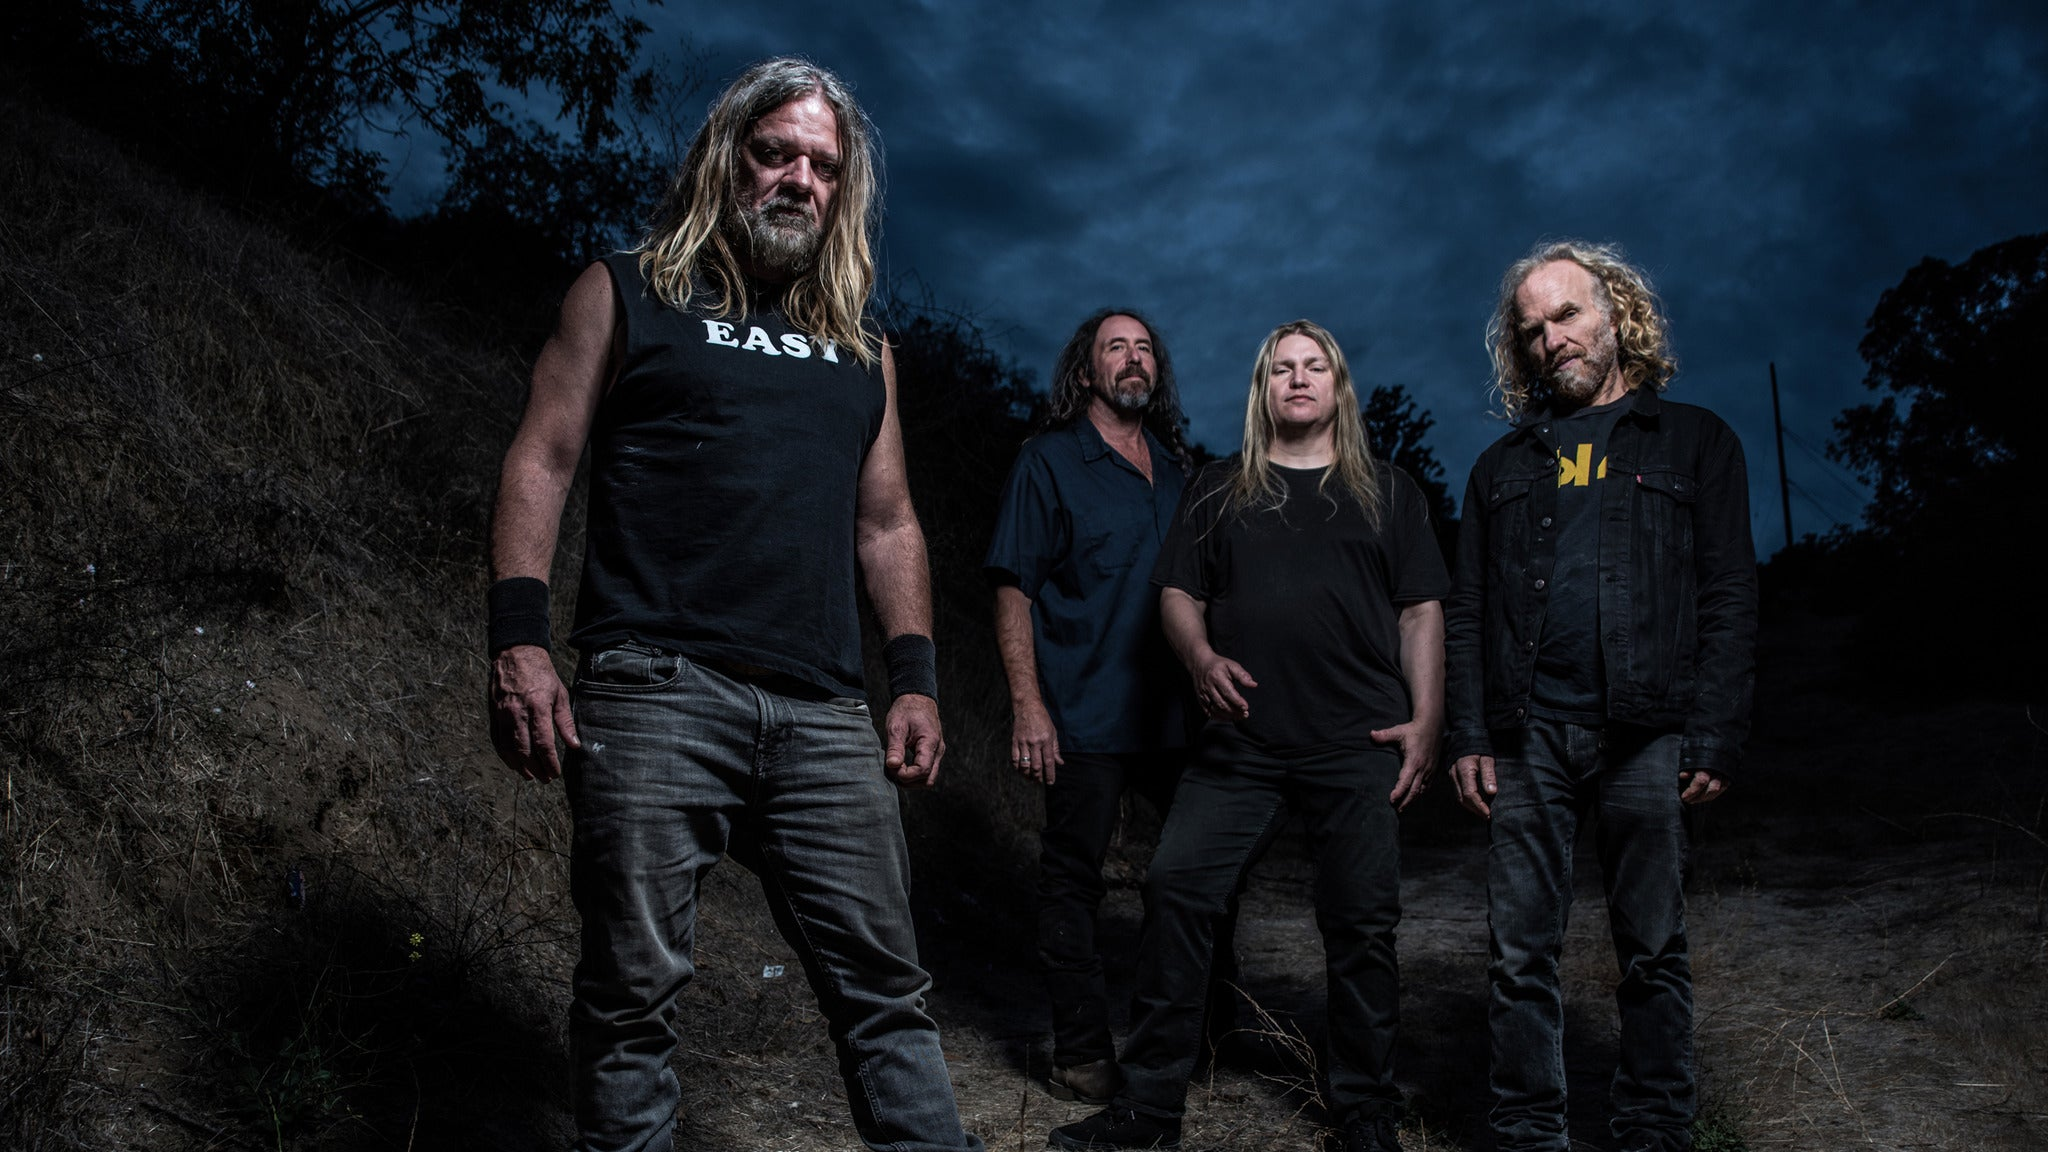 Corrosion of Conformity at Vinyl Music Hall